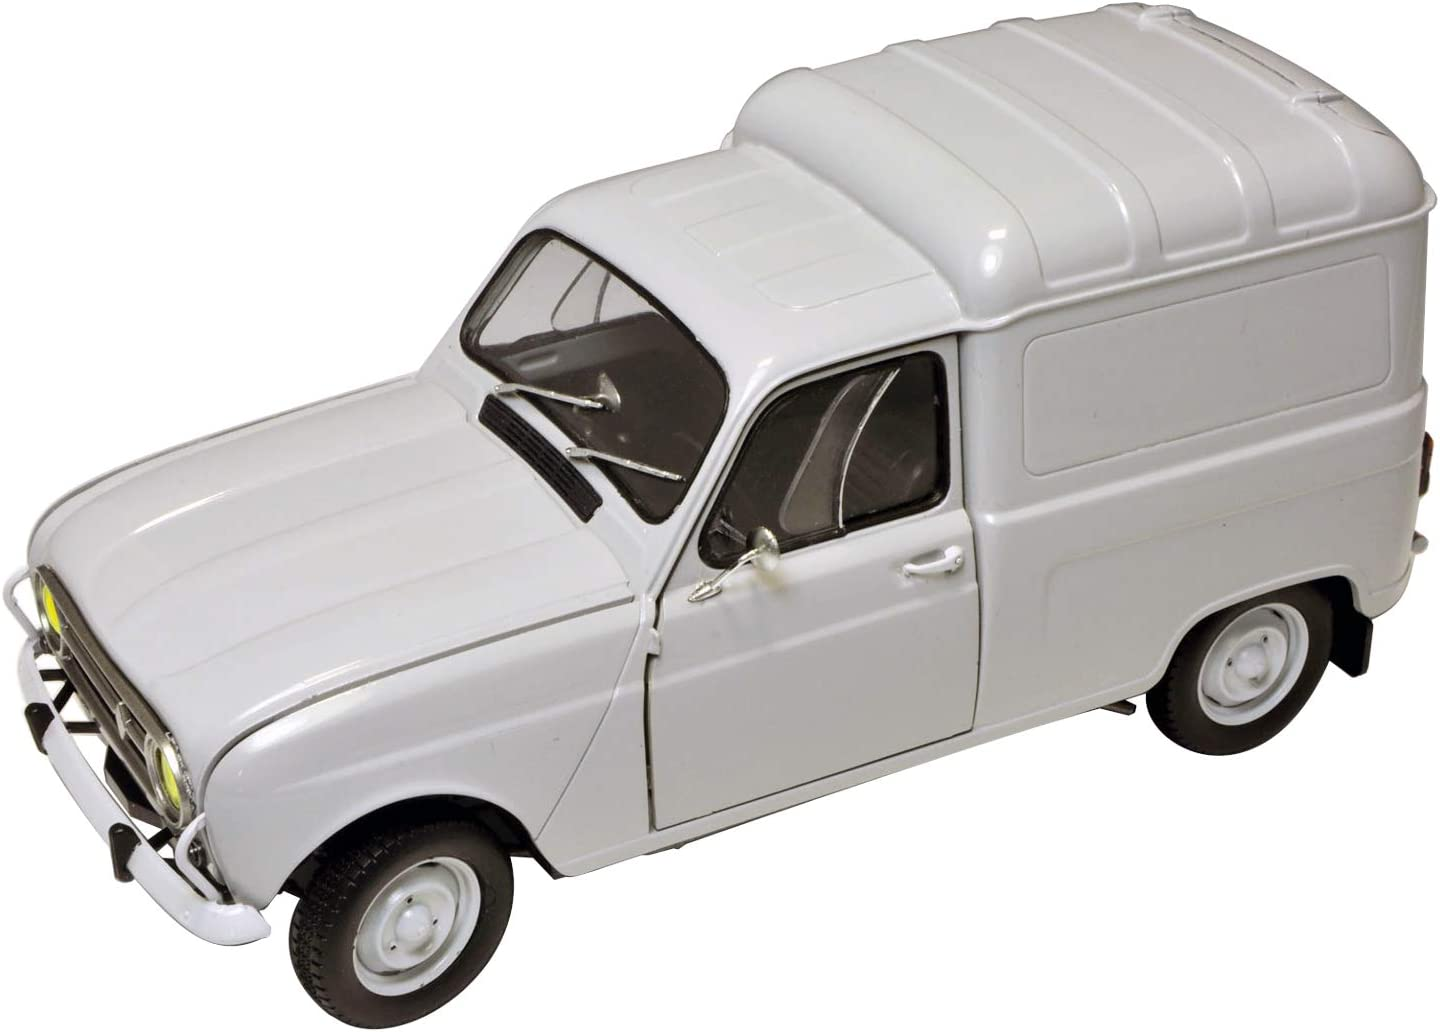 1:24 Renault 4 Fourgonnette Model Kit